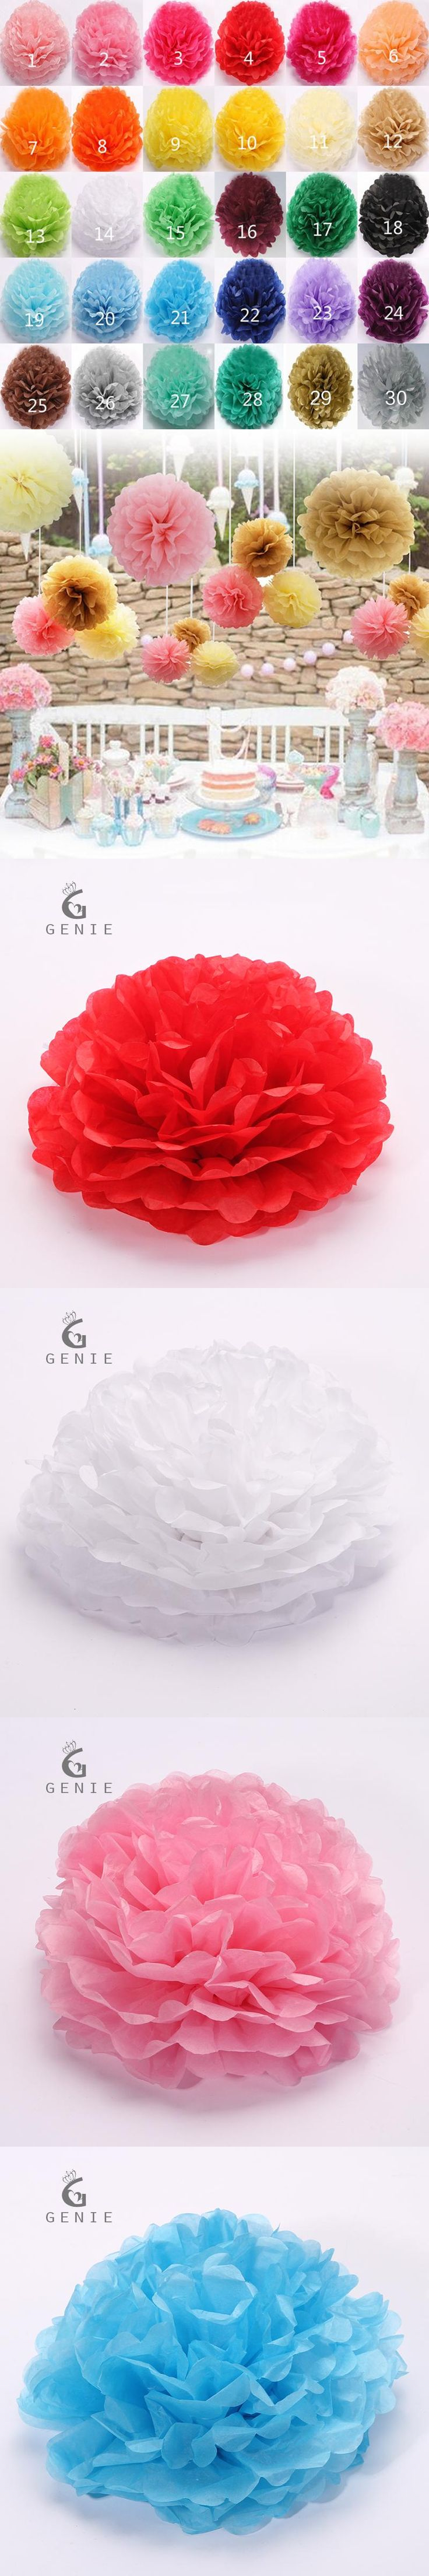 Genie 20 PCS Paper Ball Flowers 30 Colors Multi Size DIY Home Birthday  Party Wedding Car